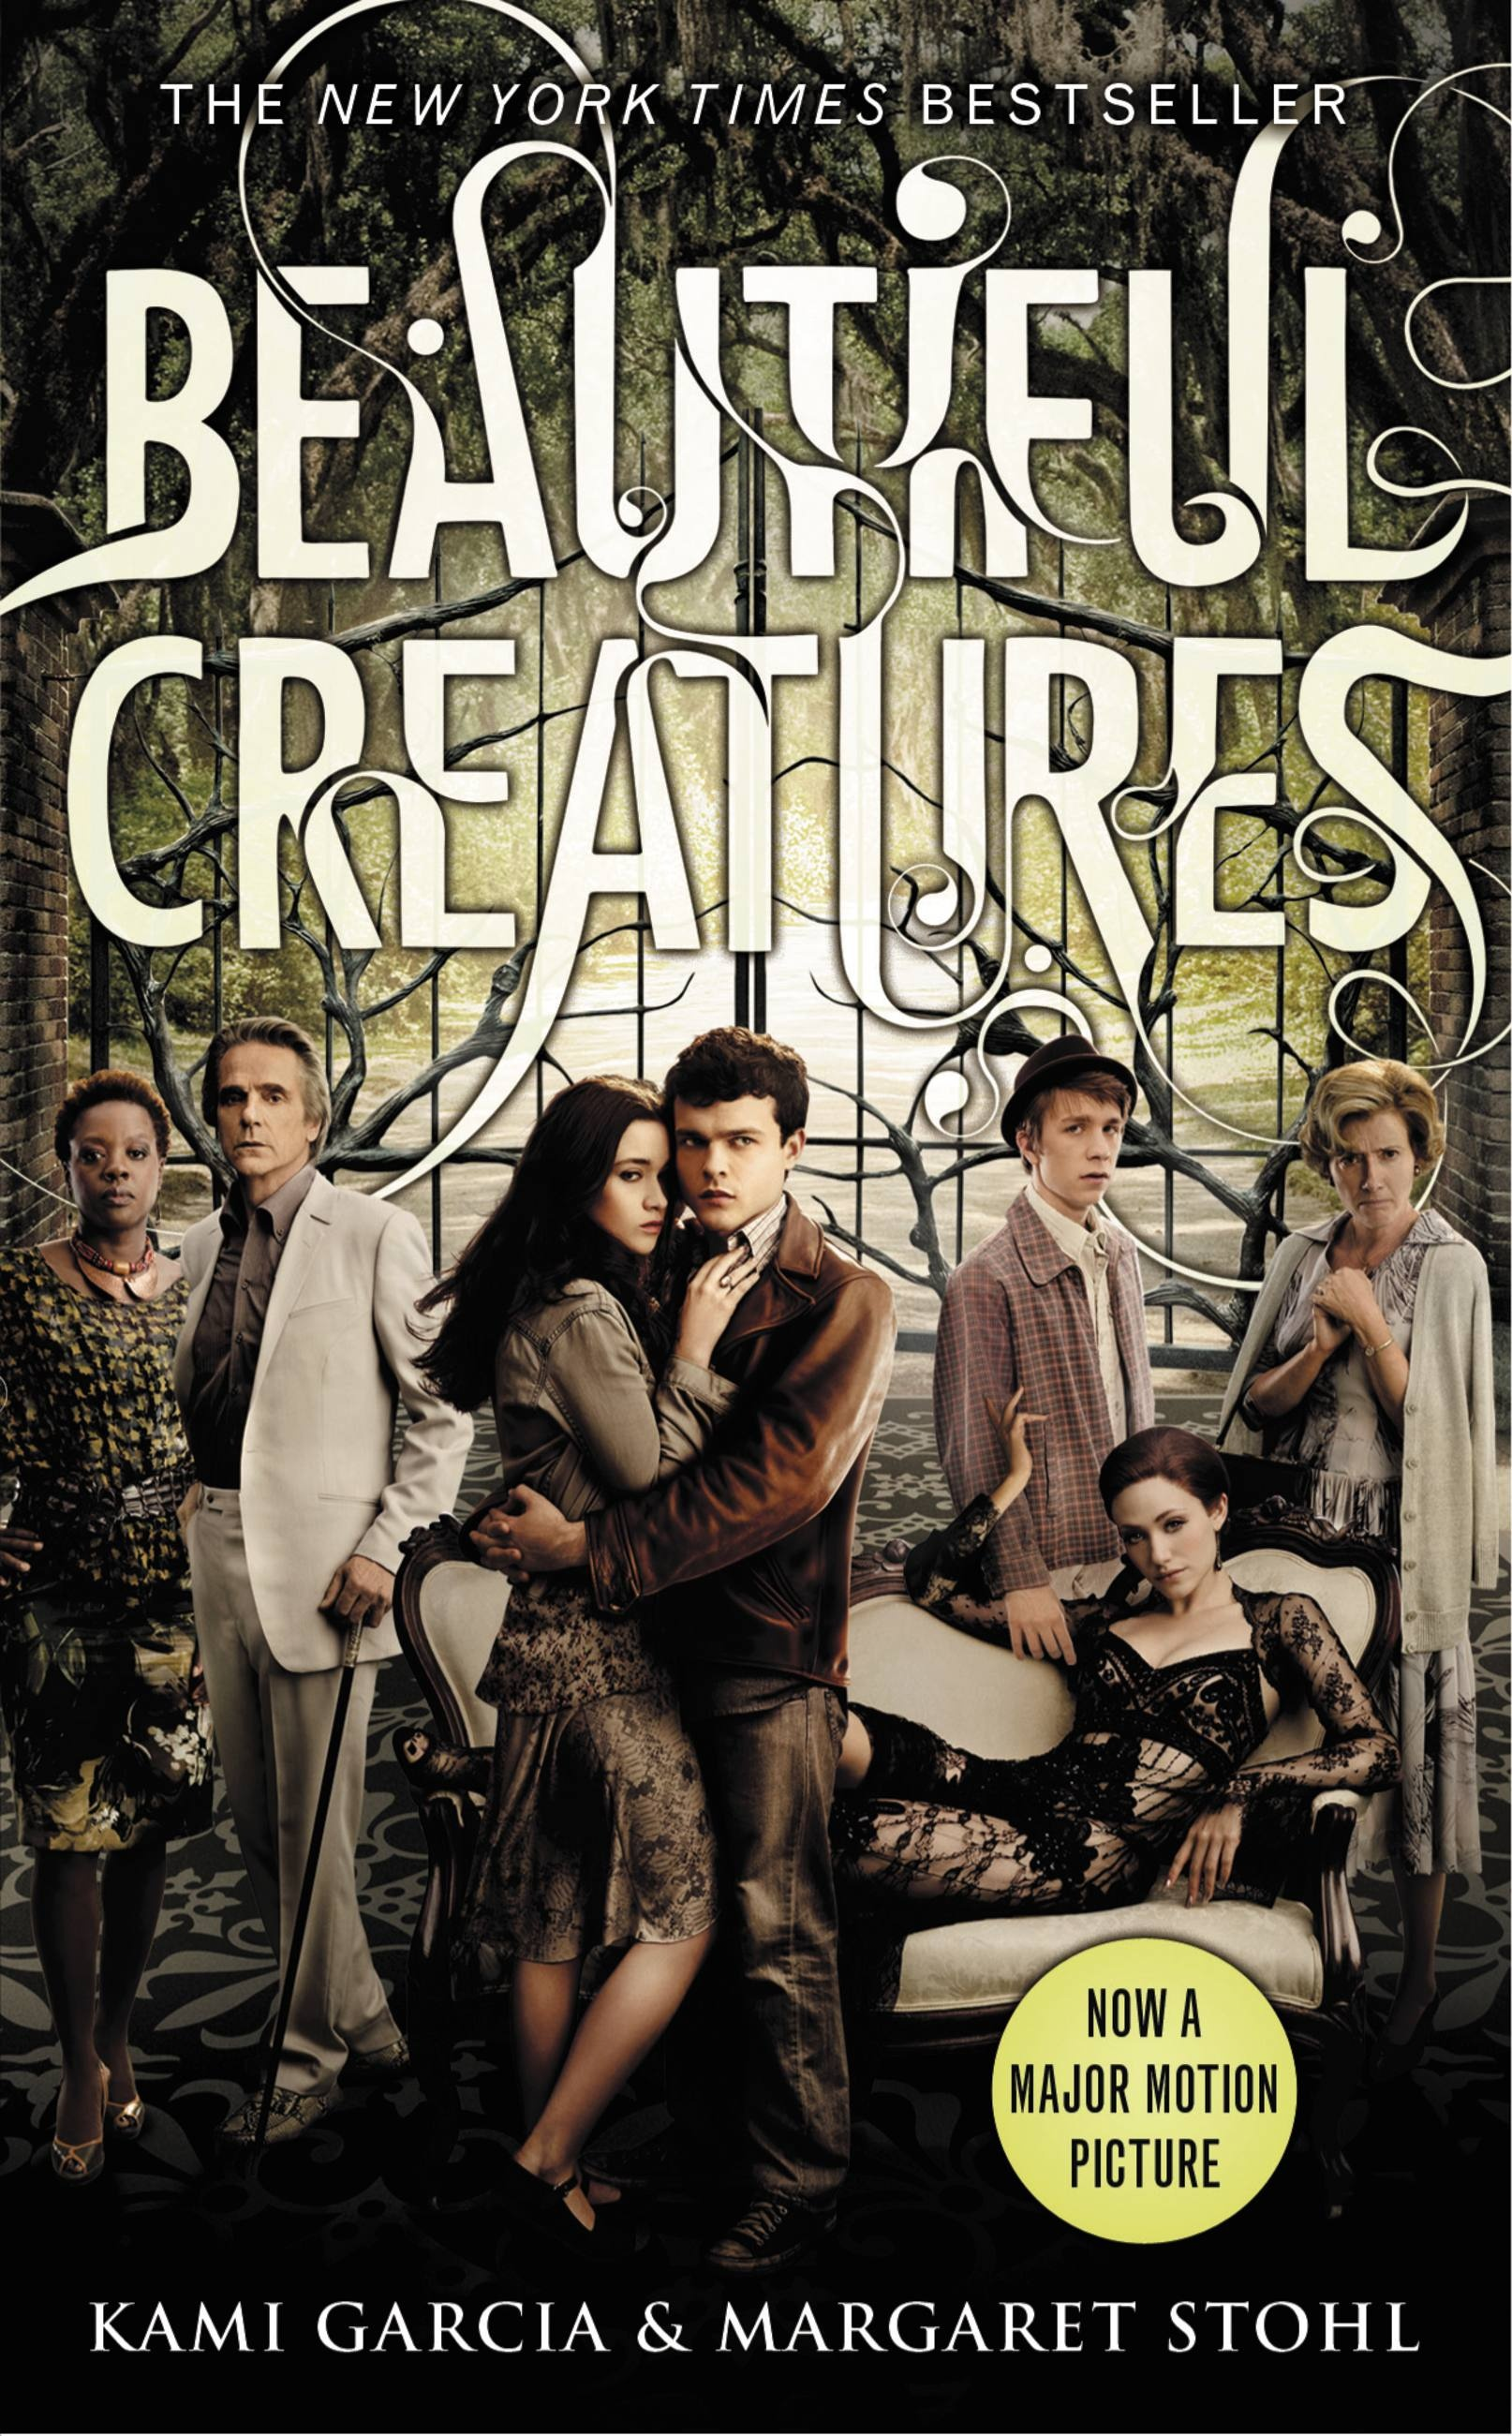 Beautiful Creatures by Kami Garcia | Hachette Book Group